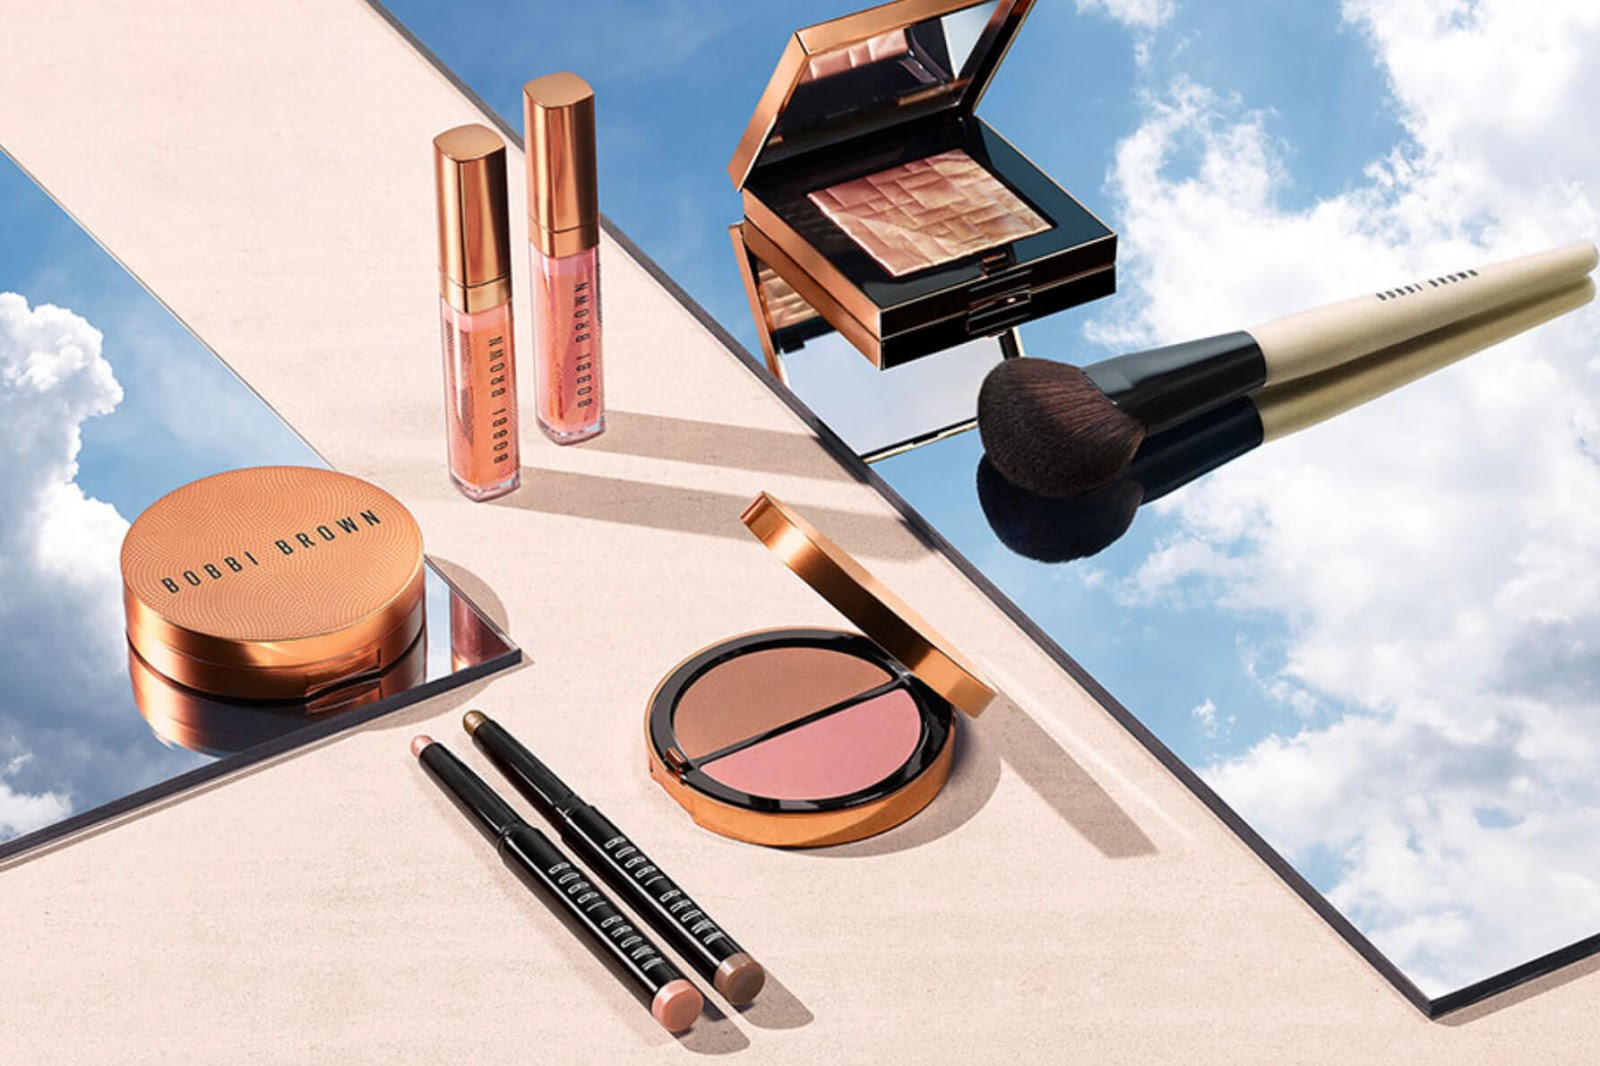 Bobbi Brown Maquillage été 2020 avis